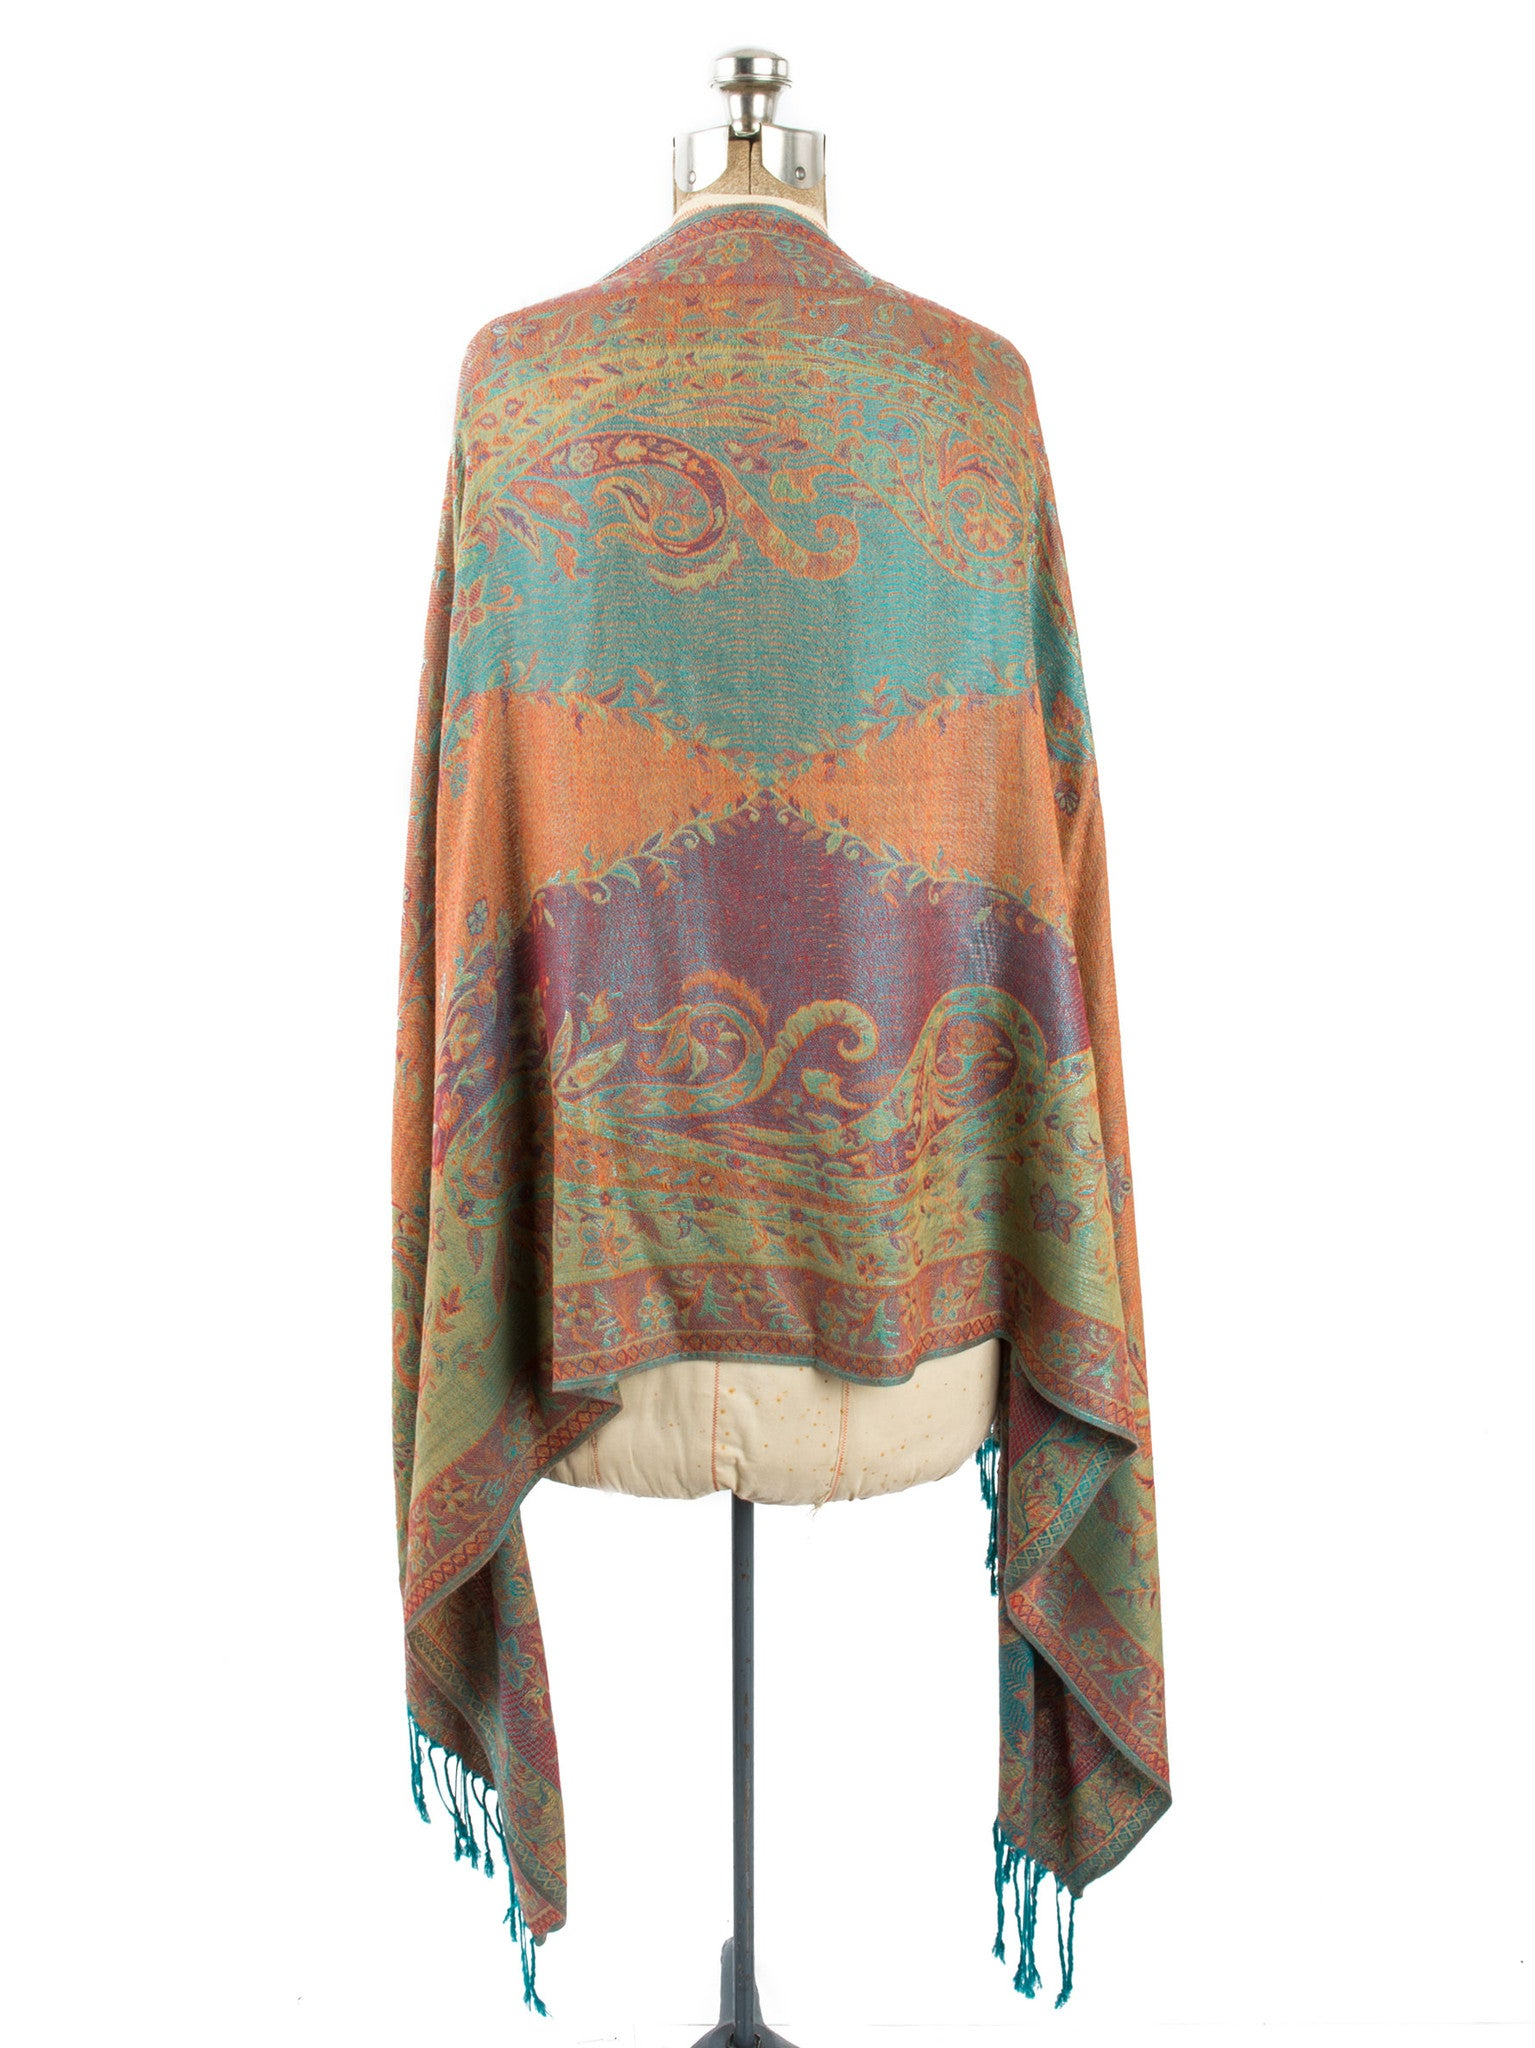 Scarves - Amrita Scarf, Pashmina Indian Paisley Traditional Jacquard Shawl -() Bohomonde  - 6